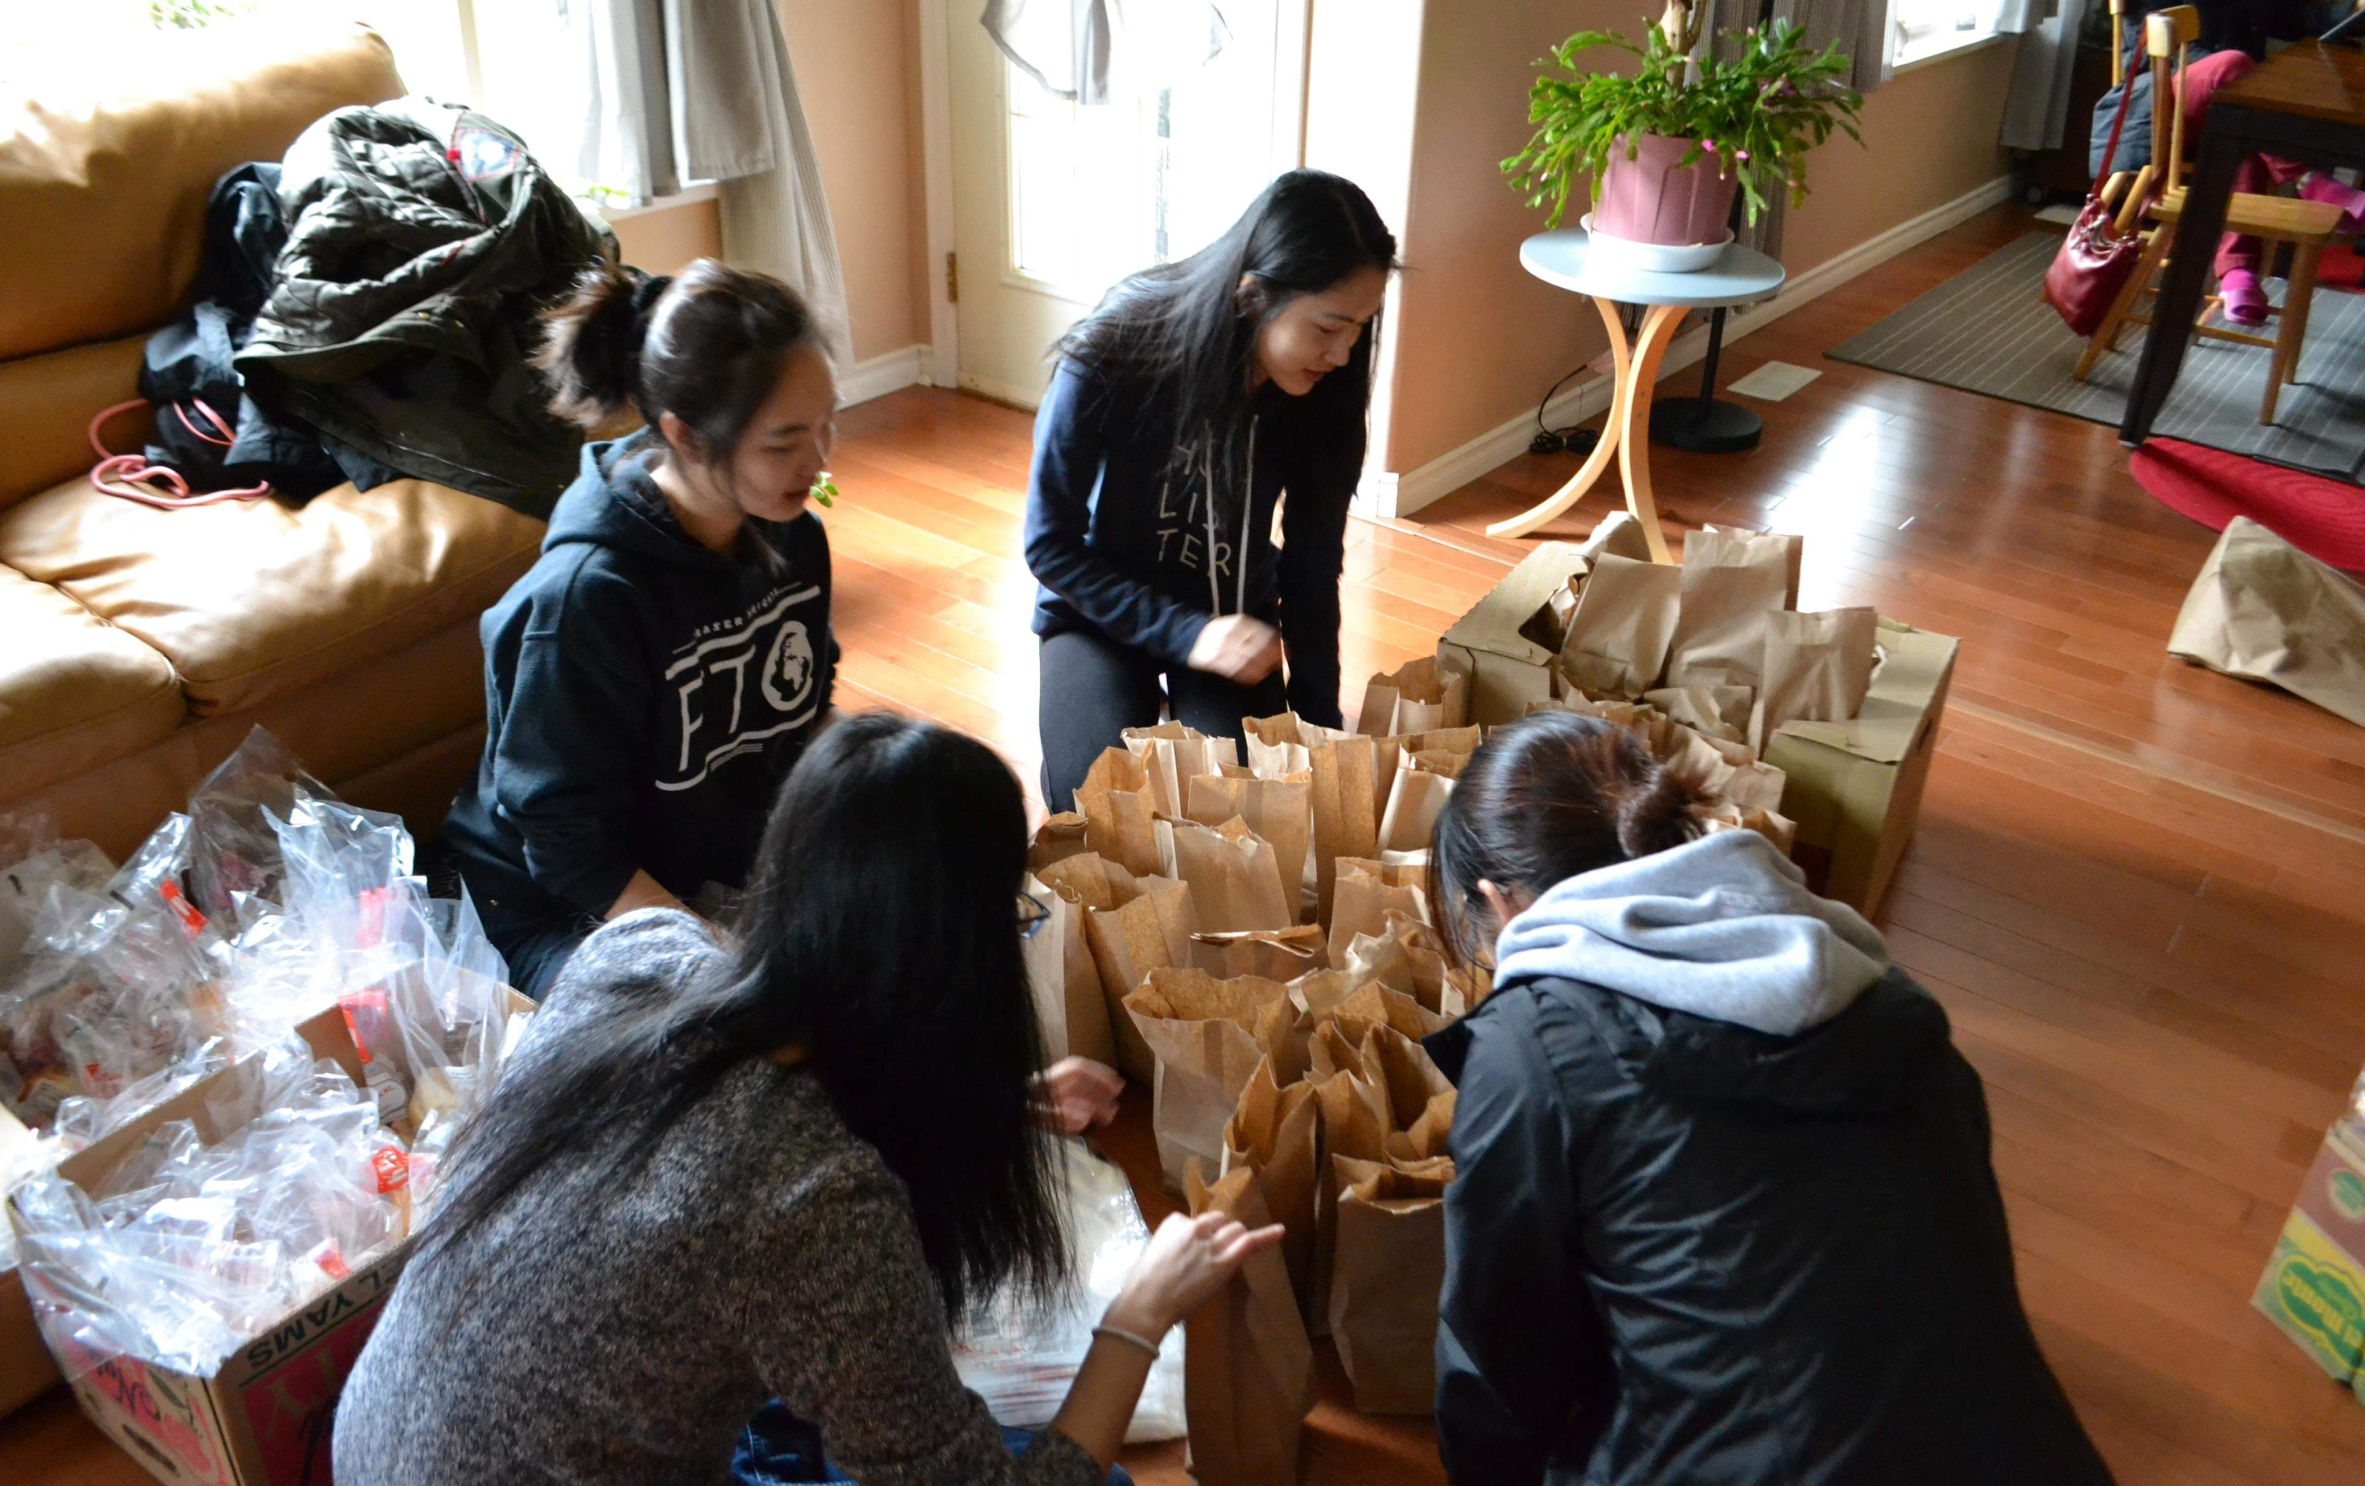 4 people organizing bags of food